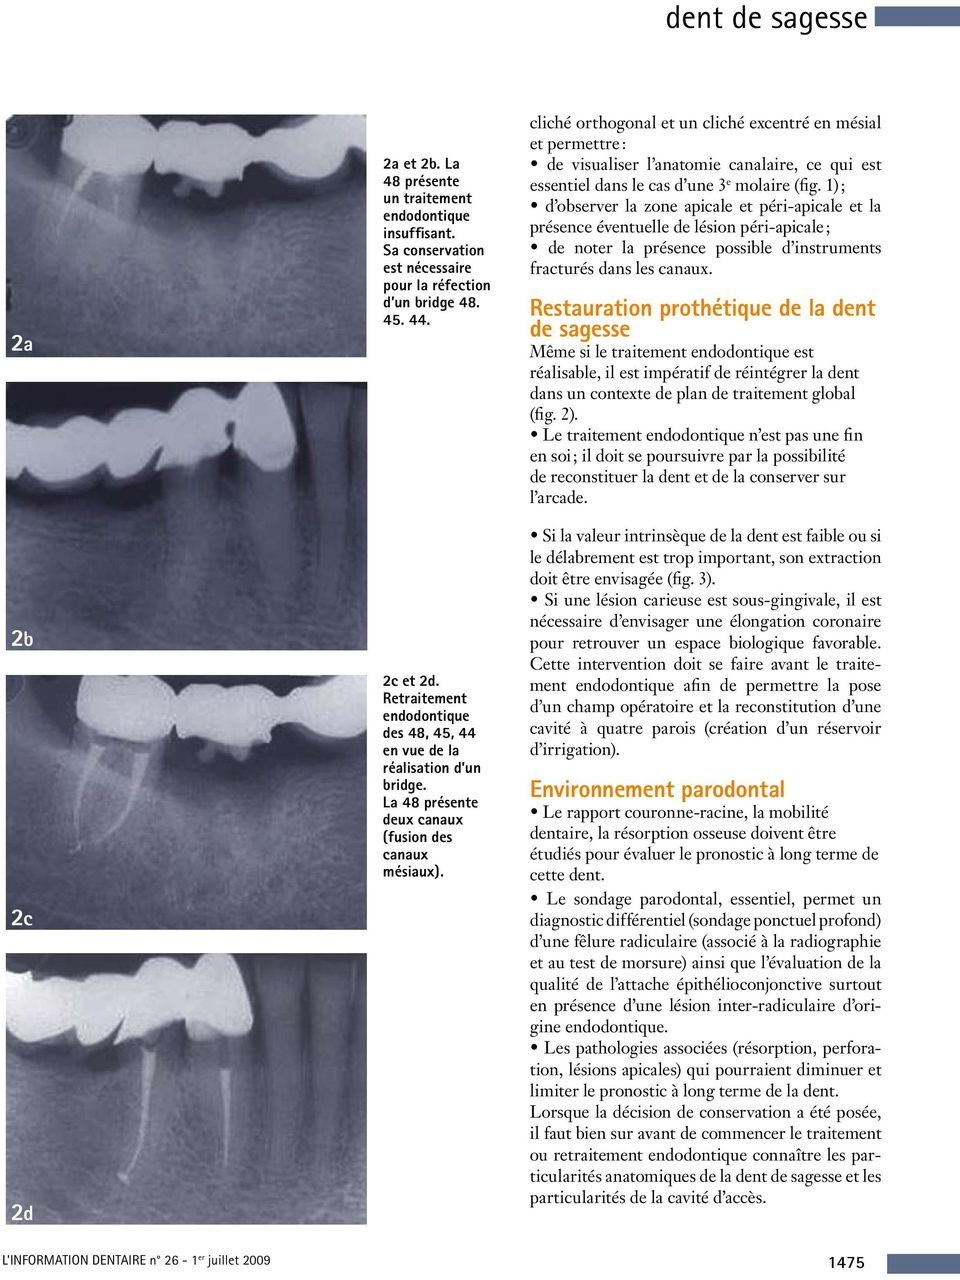 La dent de sagesse pose la question de sa. Traitement endodontique ...